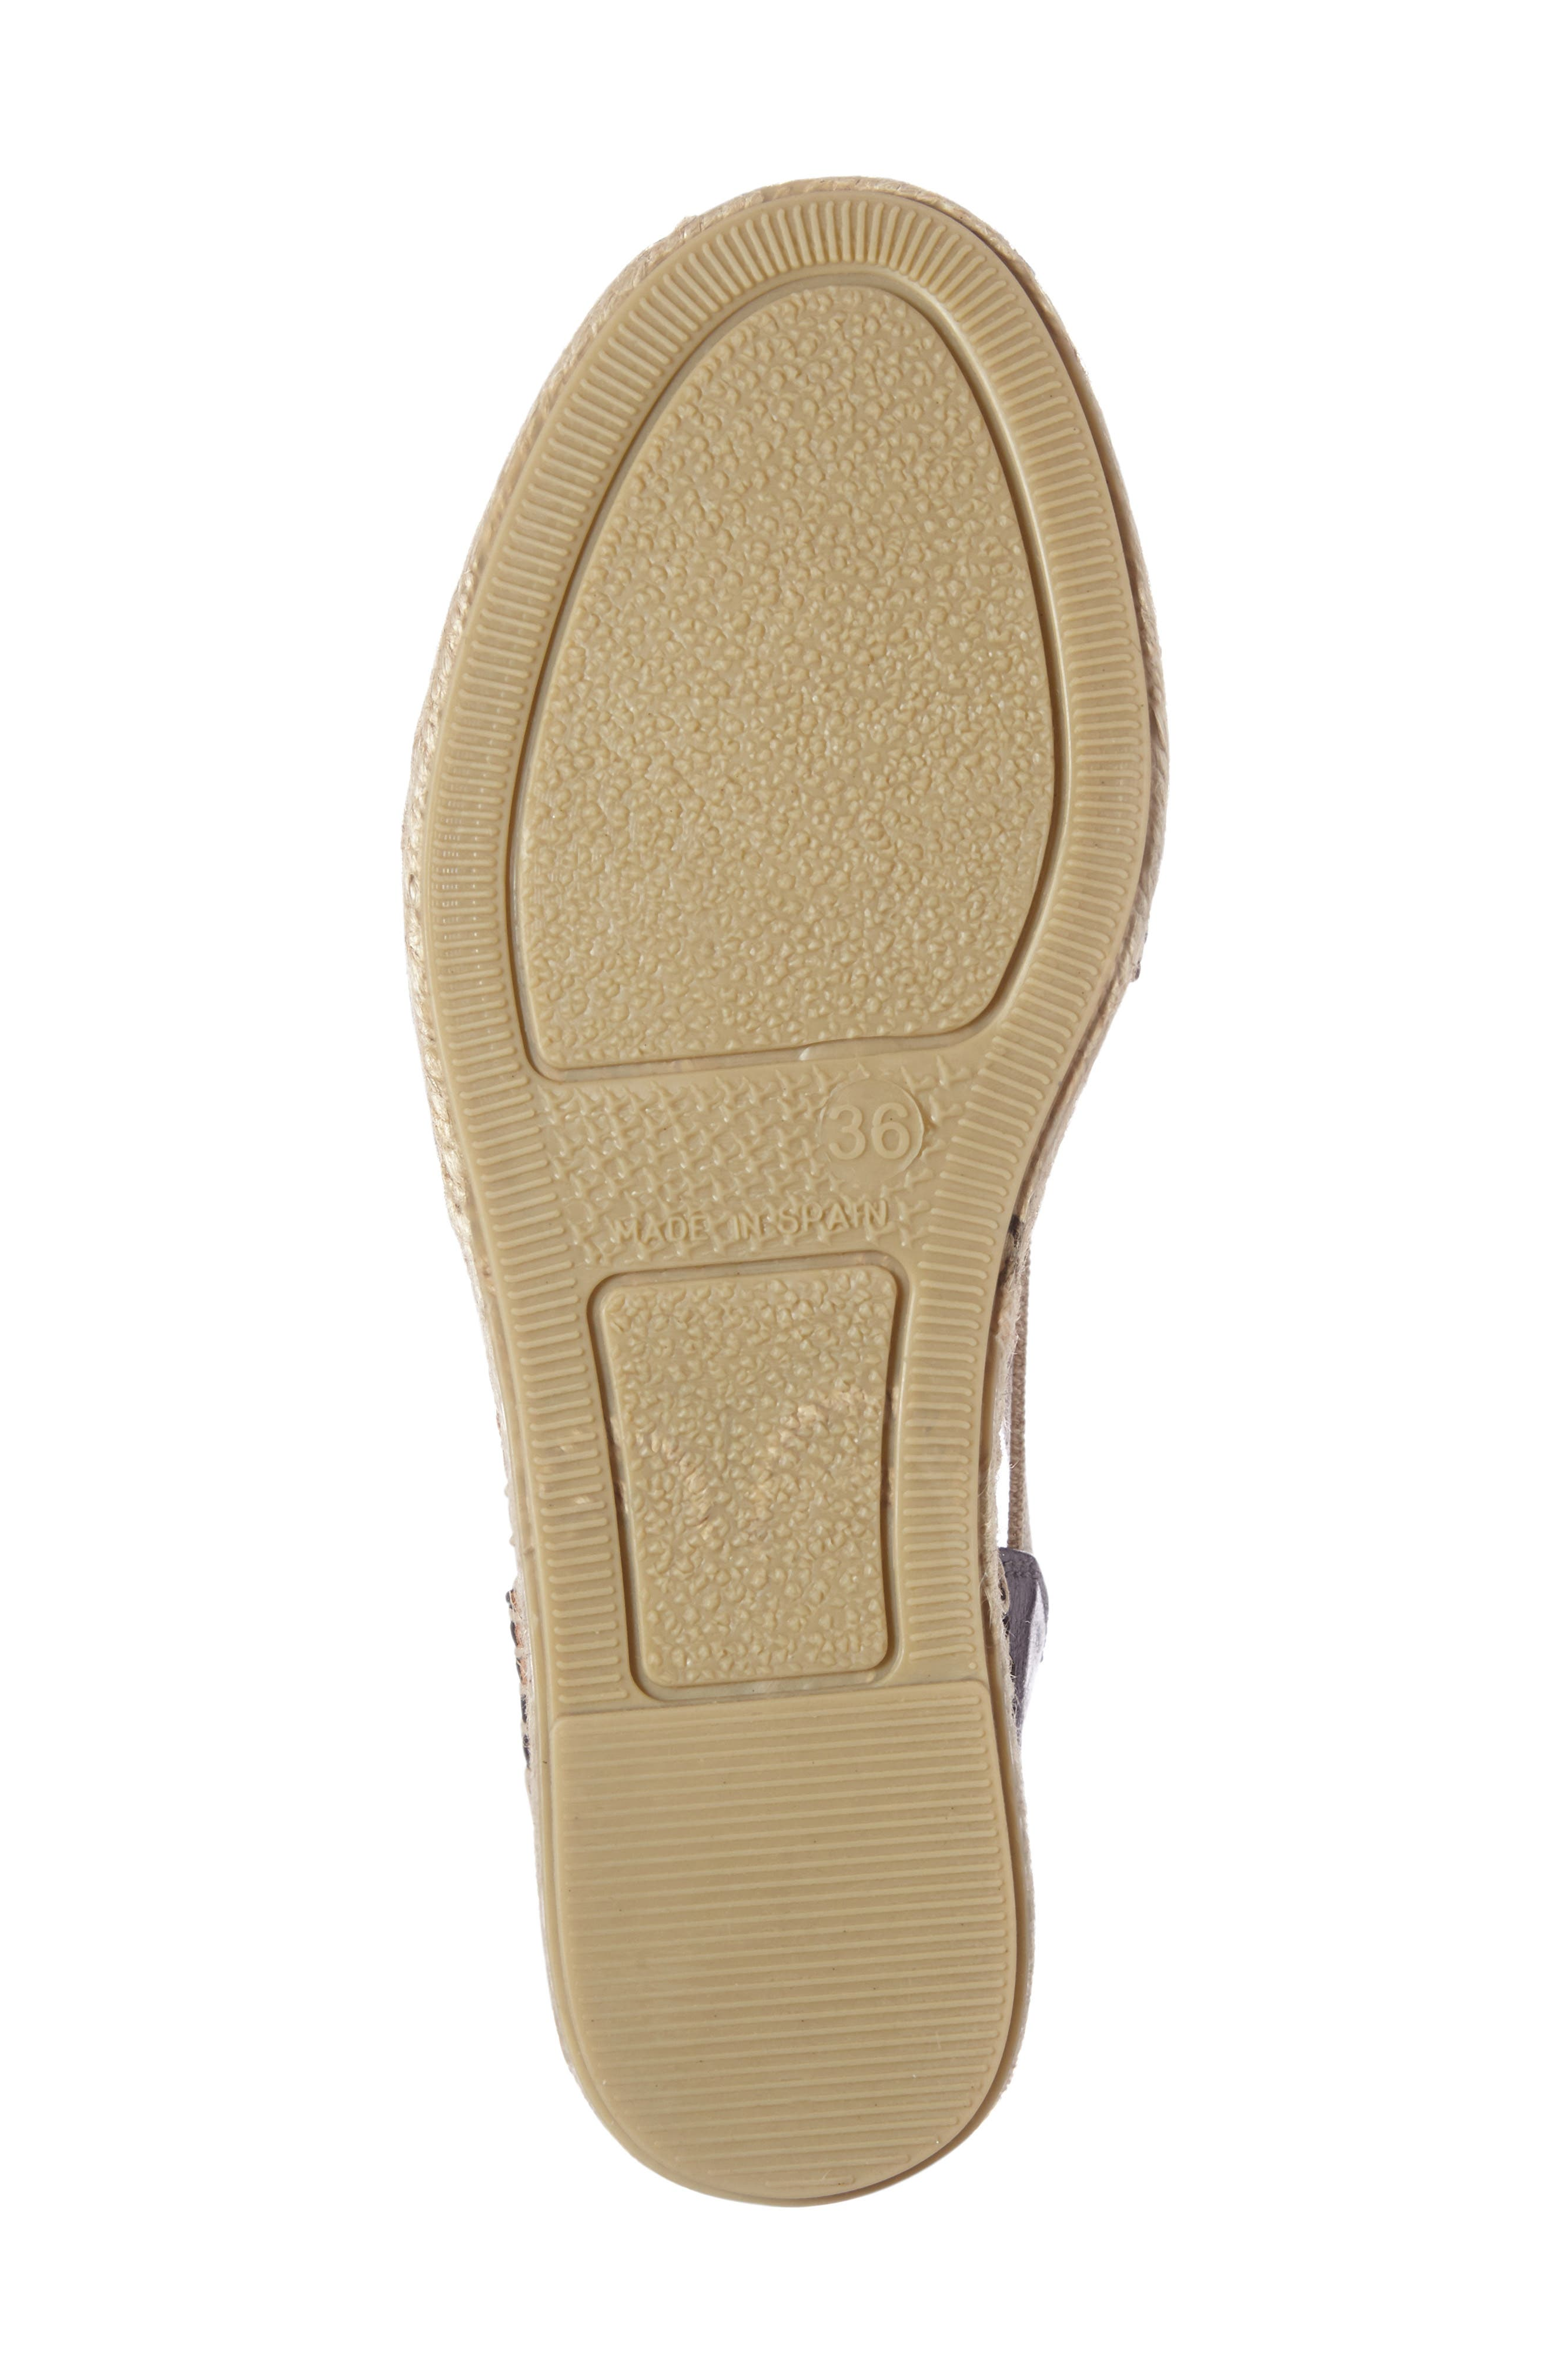 Etna Espadrille Sandal,                             Alternate thumbnail 4, color,                             LEAD LEATHER